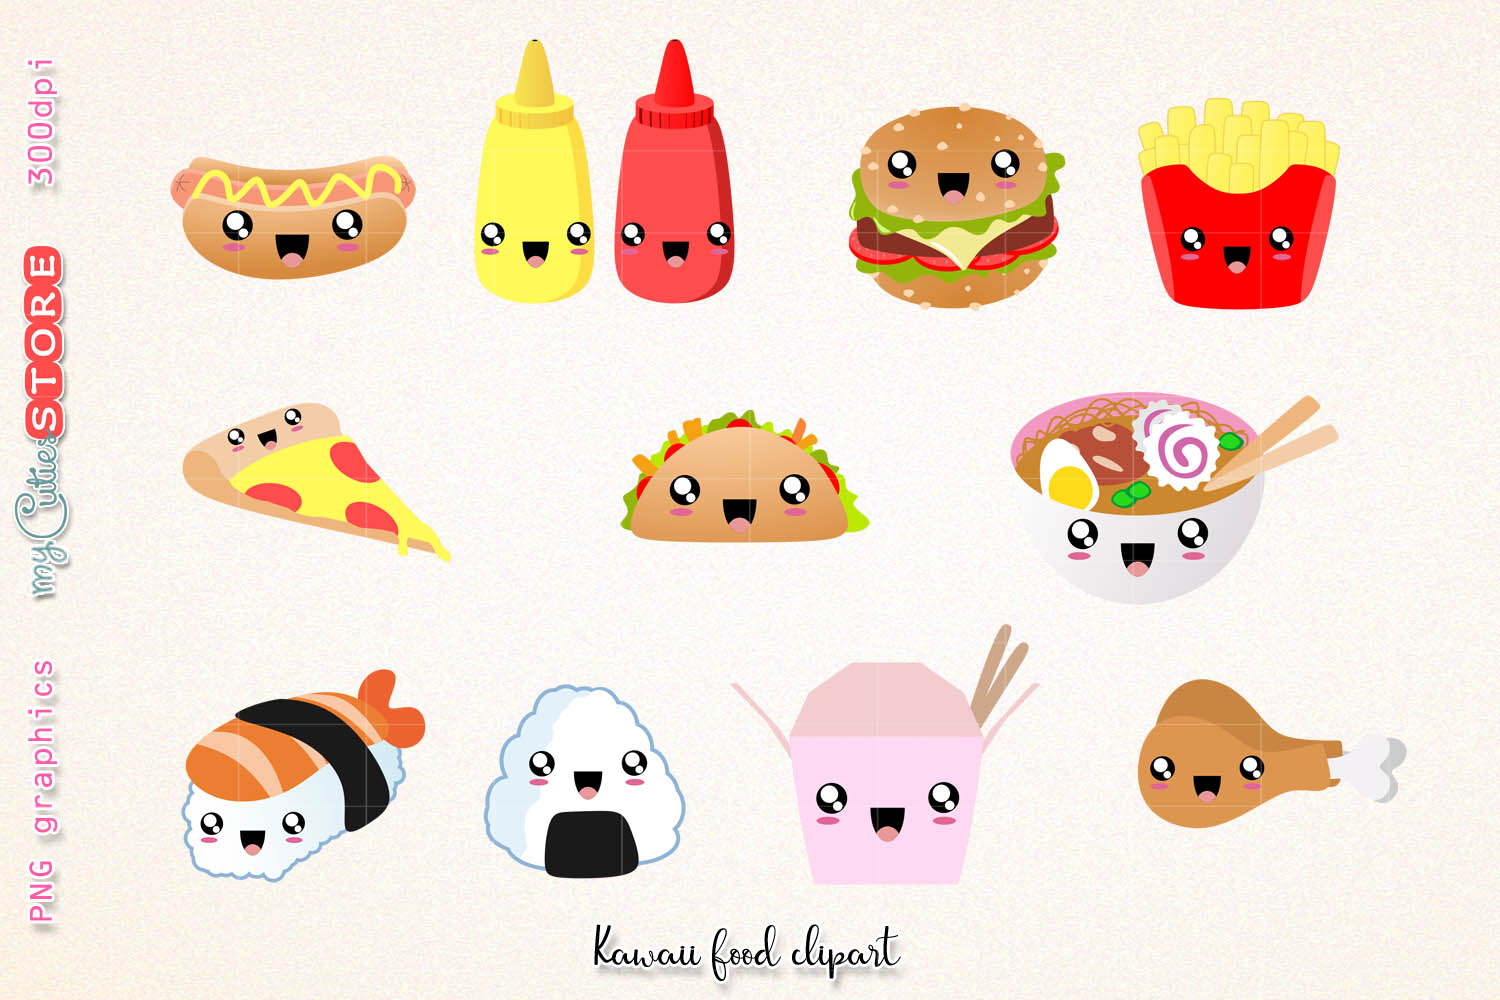 Fast food clipart, cute kawaii dinner clipart and digital stamps. png  graphics clip art set for planner stickers, scraps or digital planning..